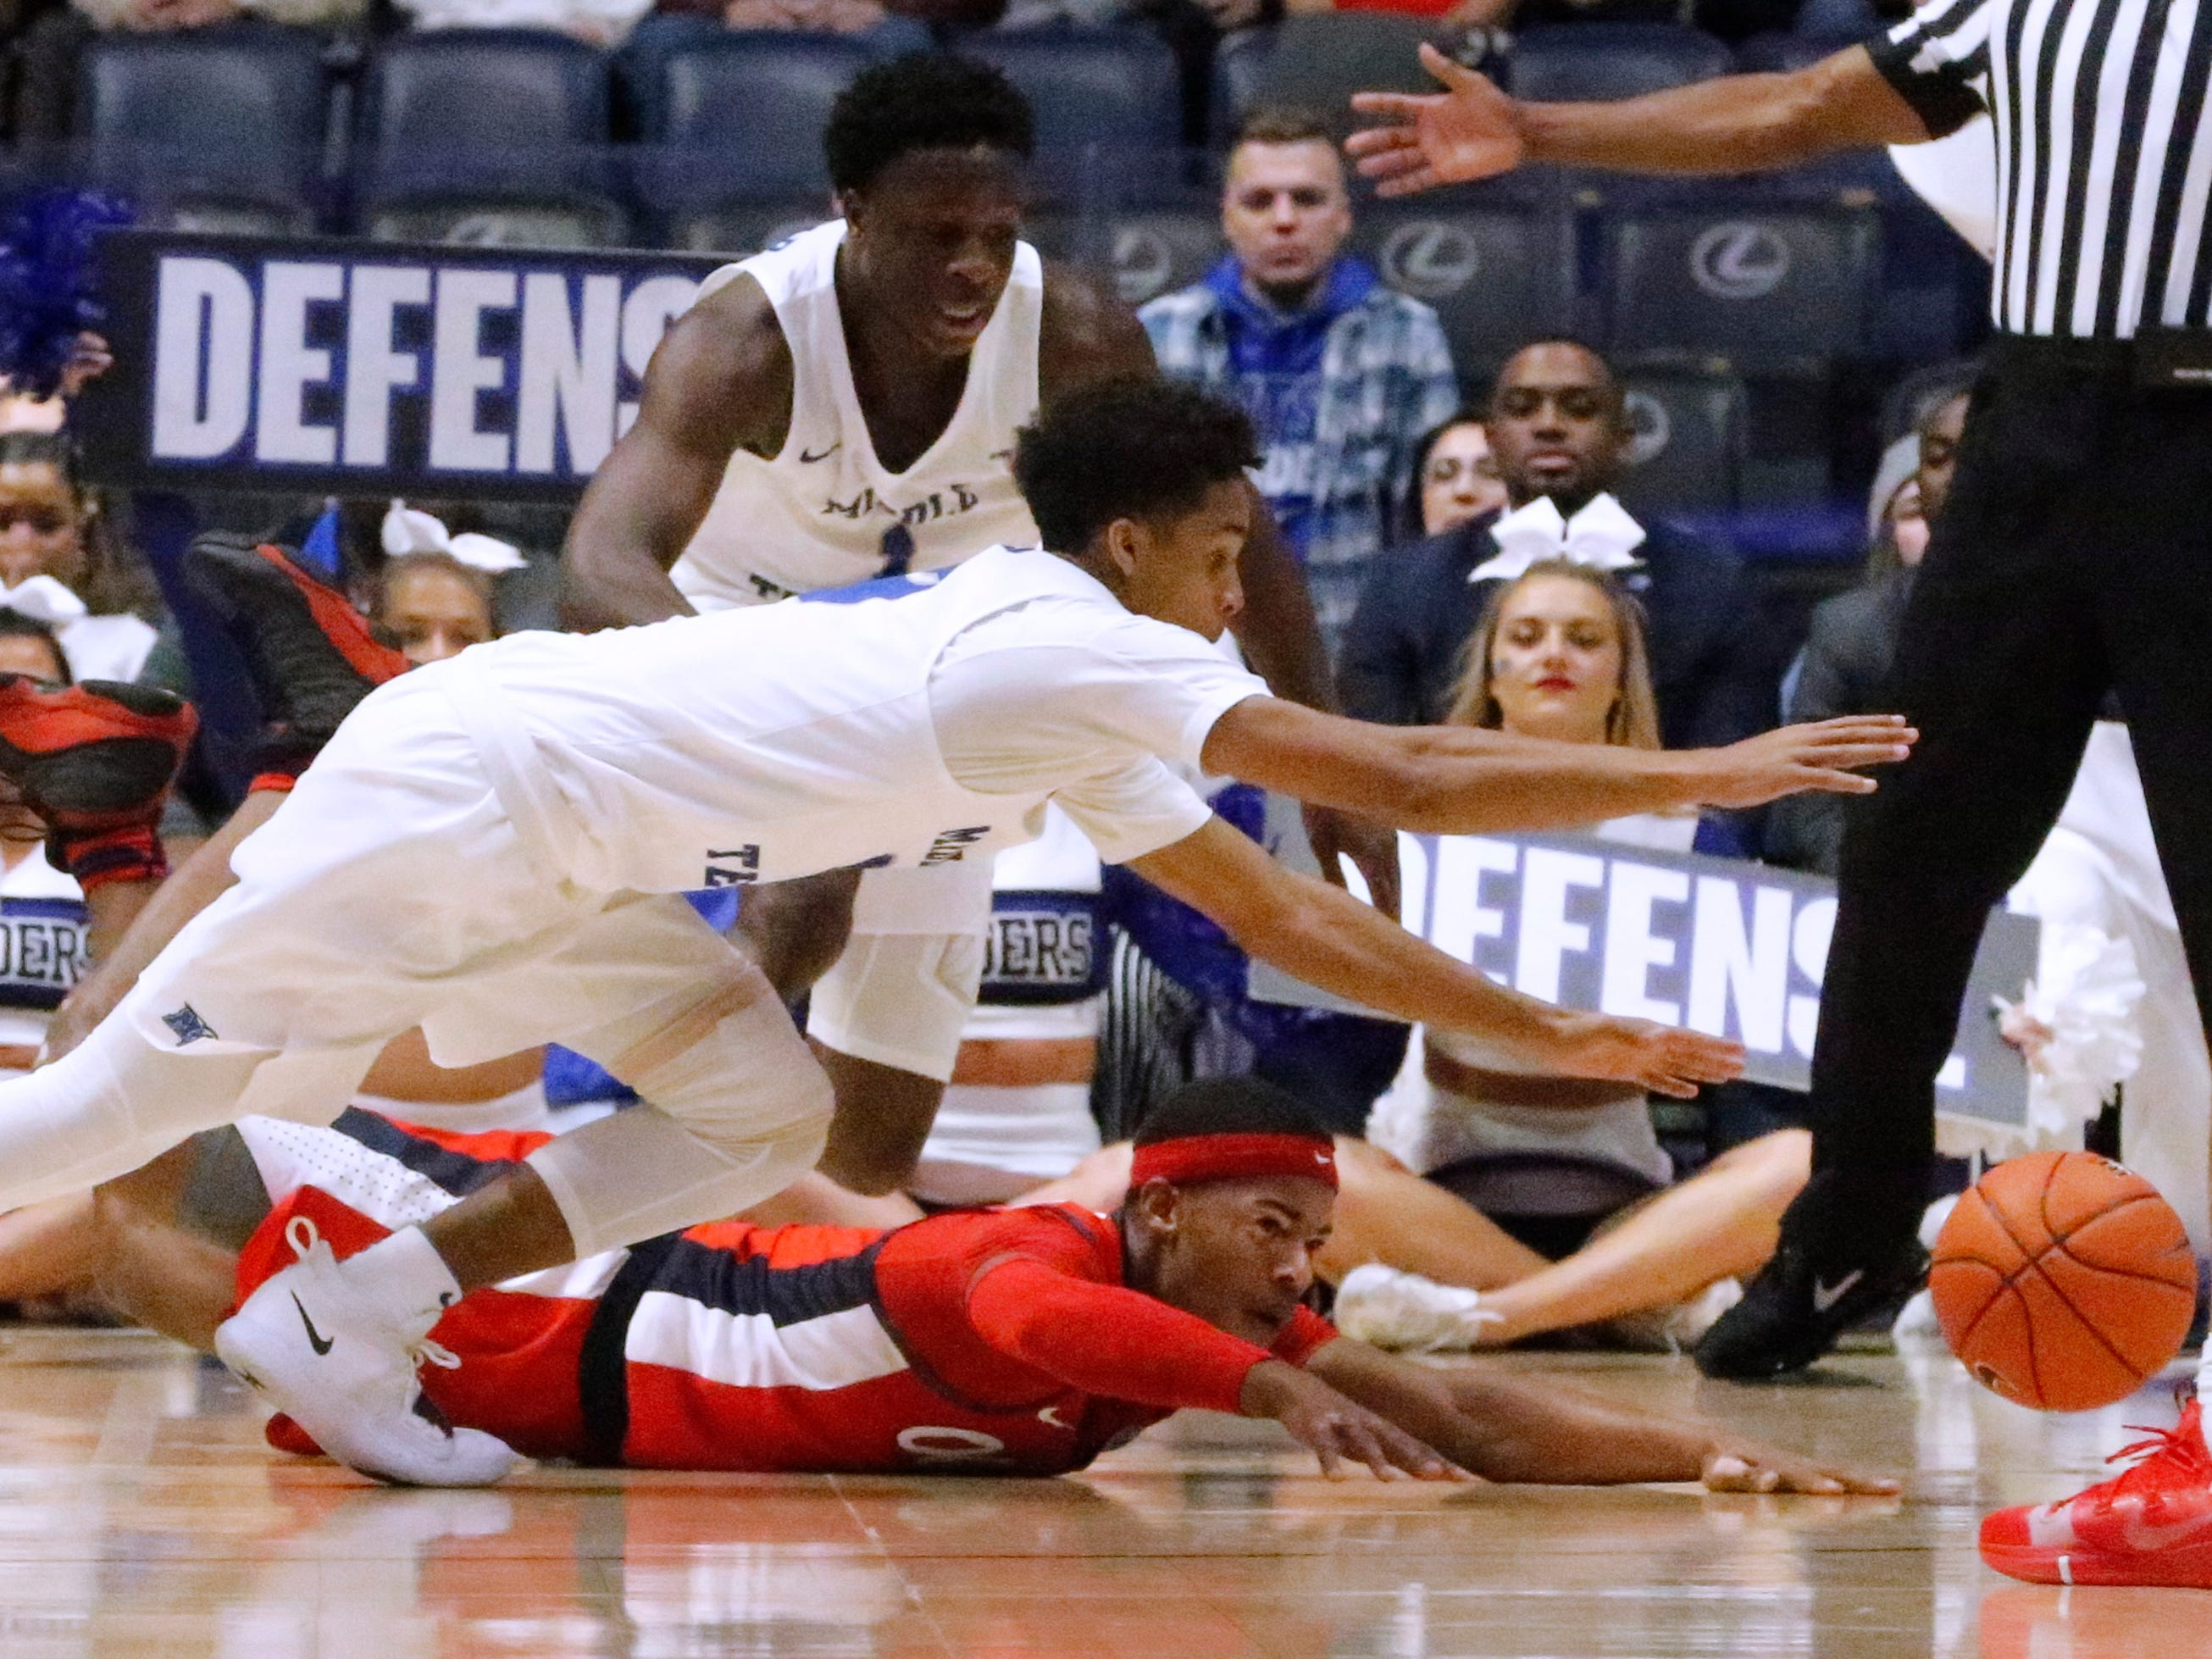 MTSU's guard Donovan Sims (3) and Ole Miss' guard Devontae Shuler (2) and MTSU's guard Junior Farquhar (1) all go for a loose ball on Friday Dec. 21, 2018, at Bridgestone Arena.